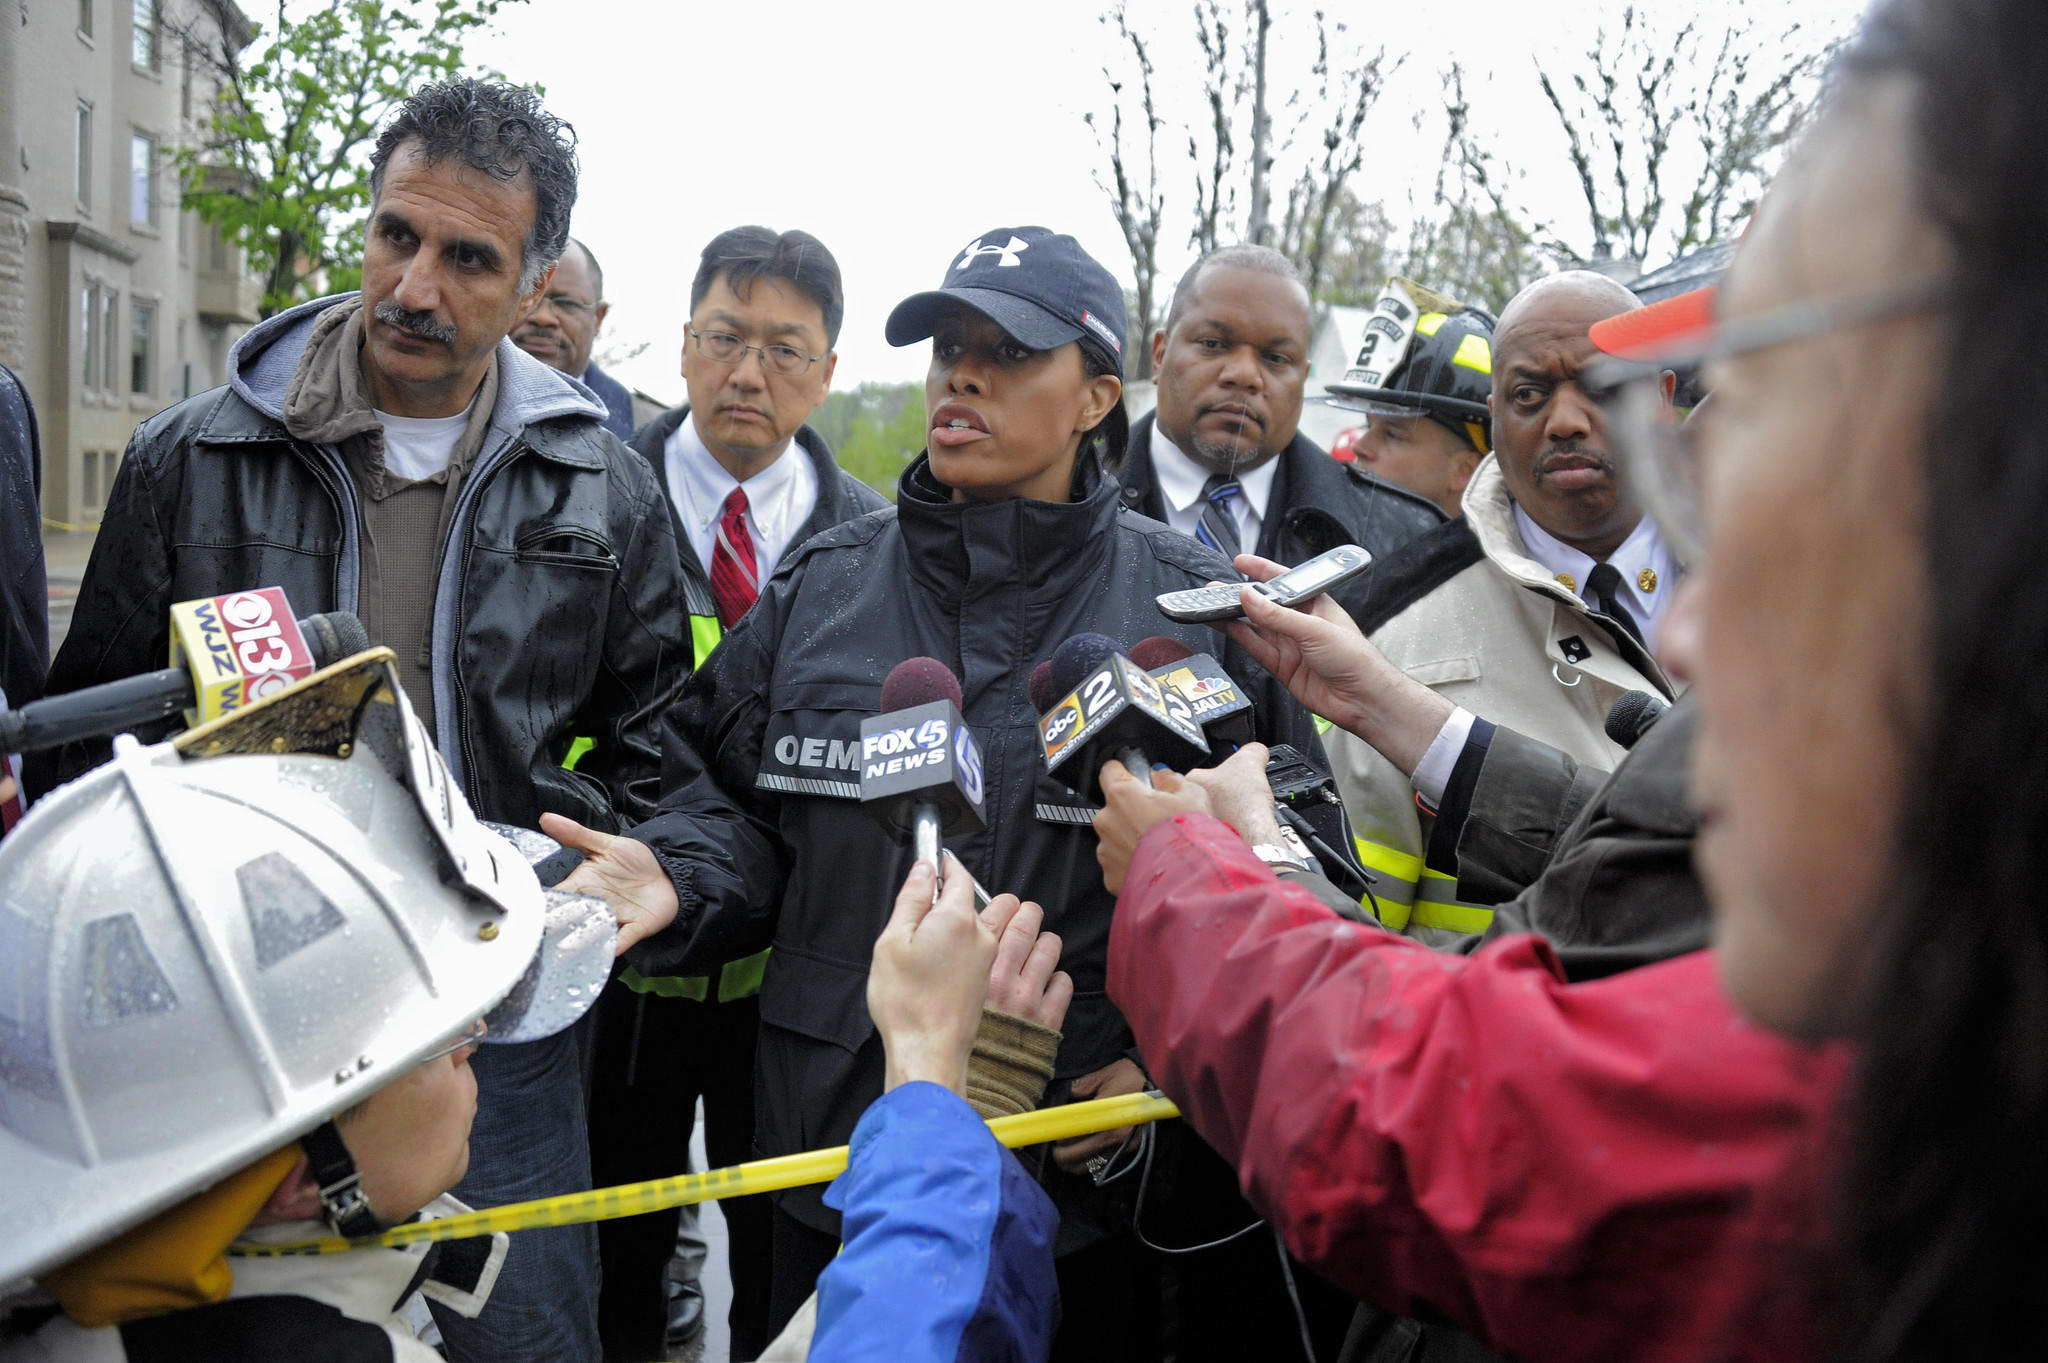 Baltimore Mayor Stephanie Rawlings-Blake briefs journalists at the scene.